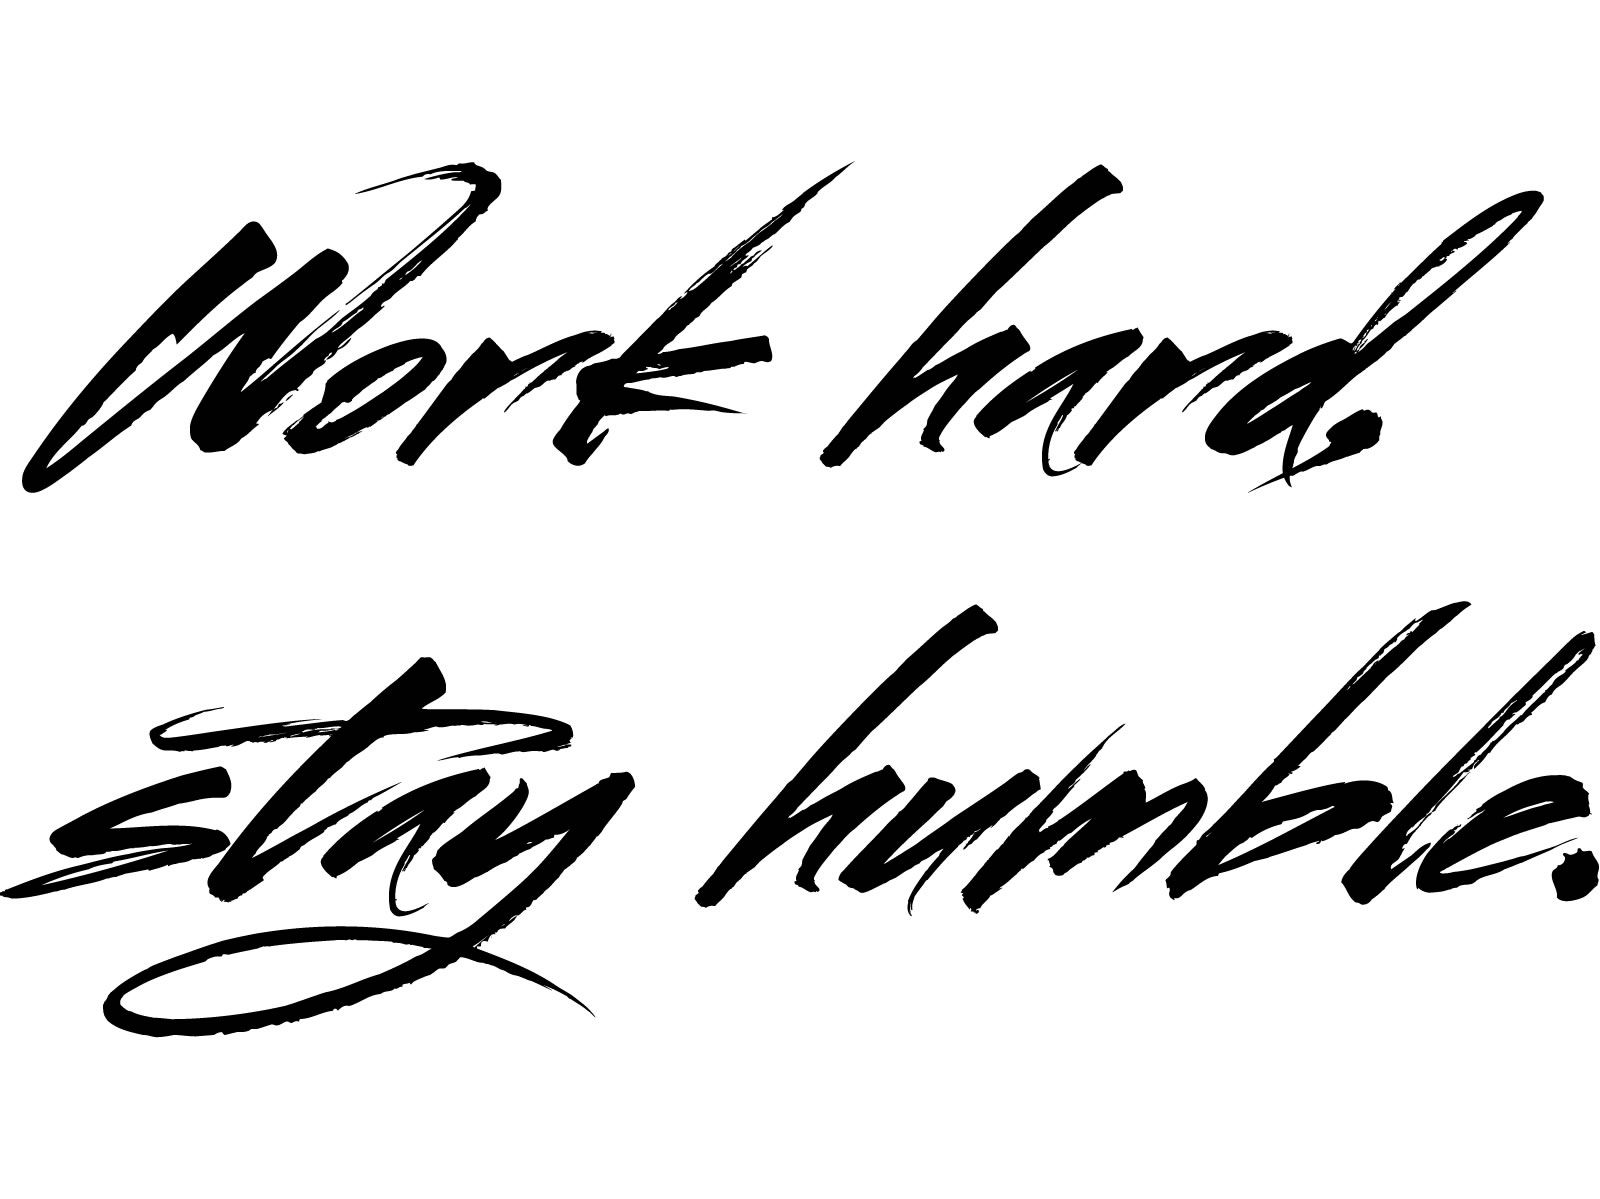 always | /DESIGN\ | Work hard stay humble, Stay humble, Design